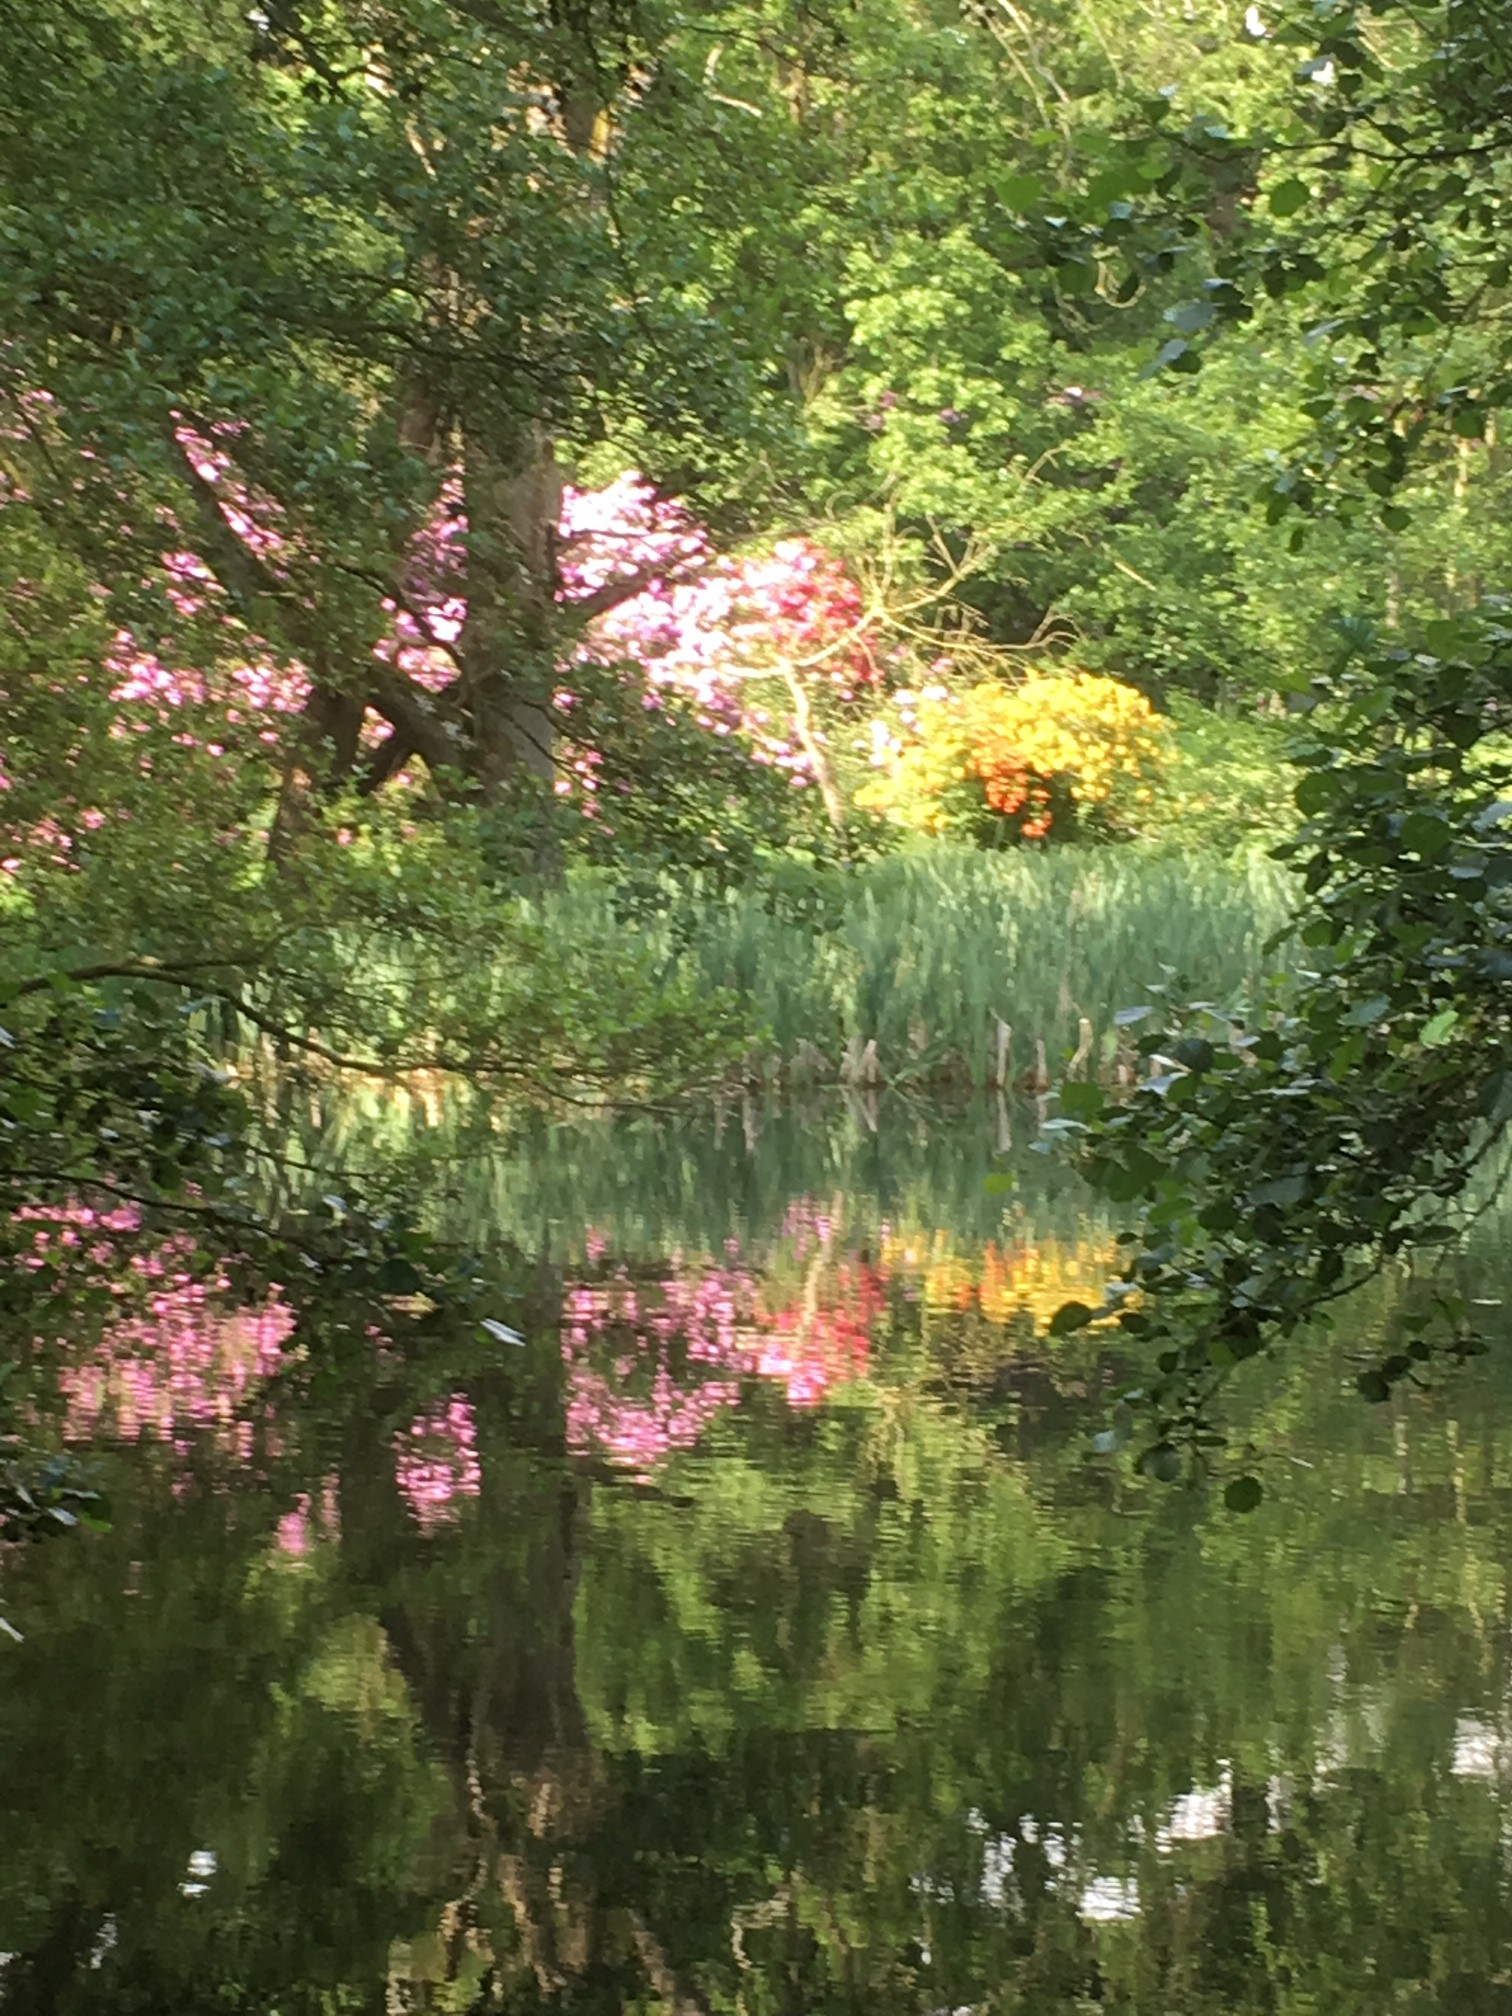 Light reflected in a pond